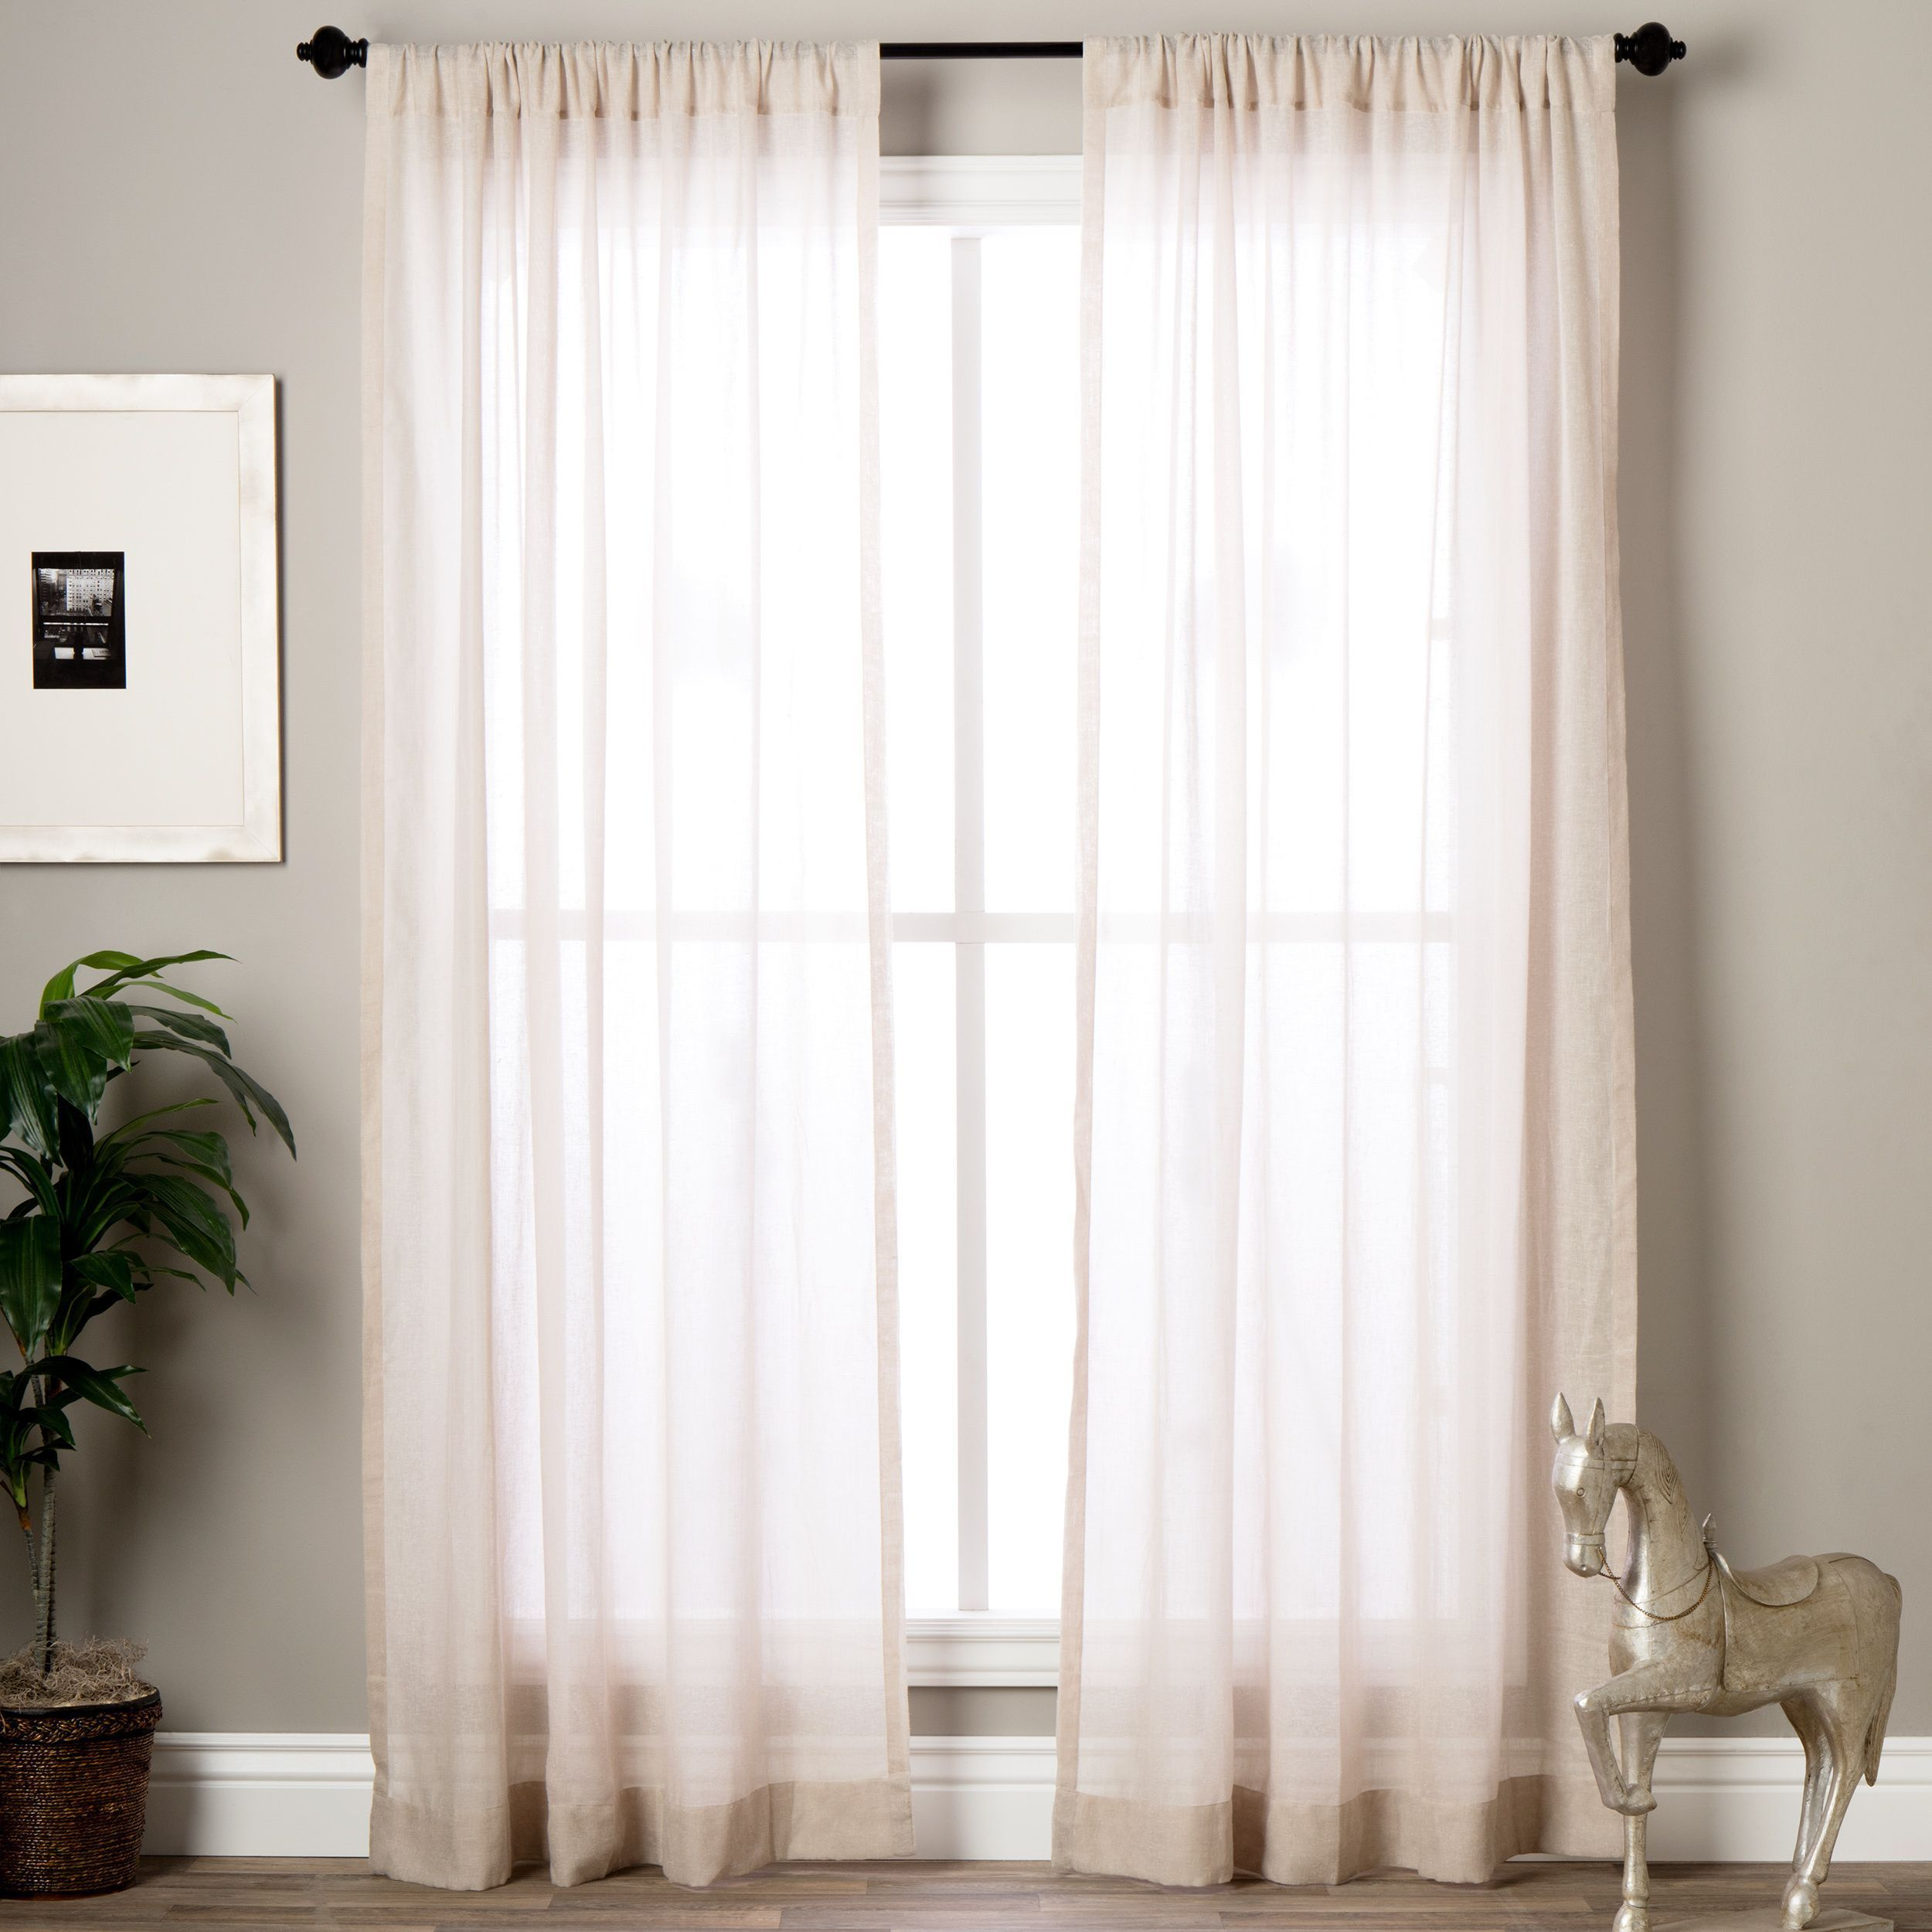 Exclusive Fabrics Tumbleweed Faux Linen Sheer Curtain Panel 96 Inch Brown Size 50 X 96 Sheer Linen Curtains Sheer Curtain Panels Curtains